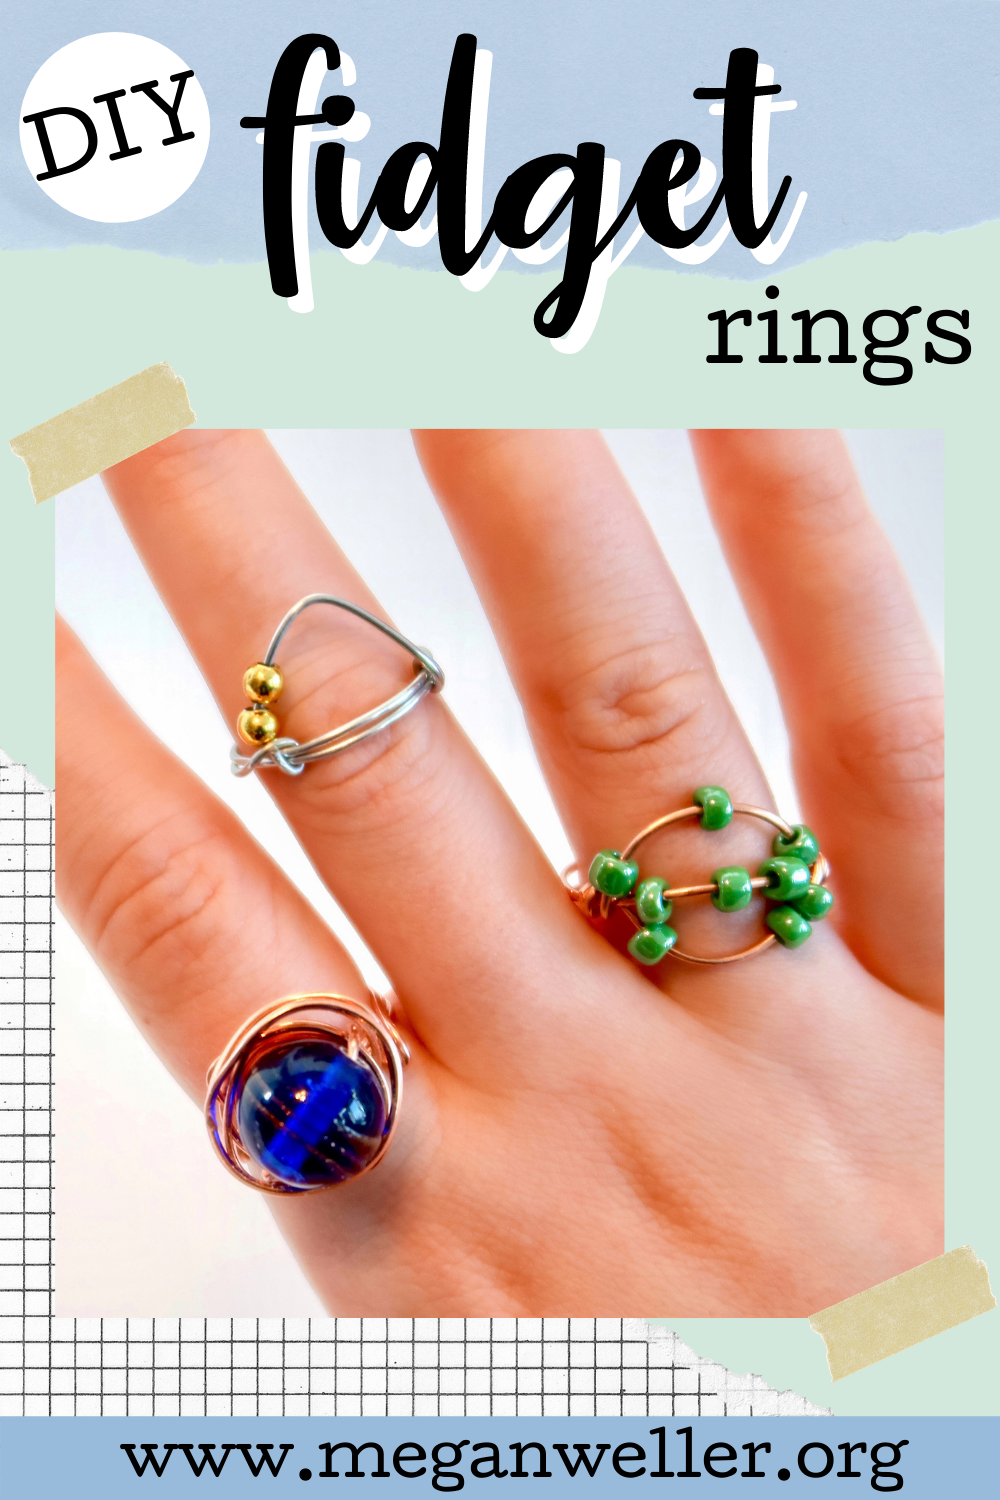 DIY Fidget Rings - and easy wire ring tutorial. How to make wire rings.